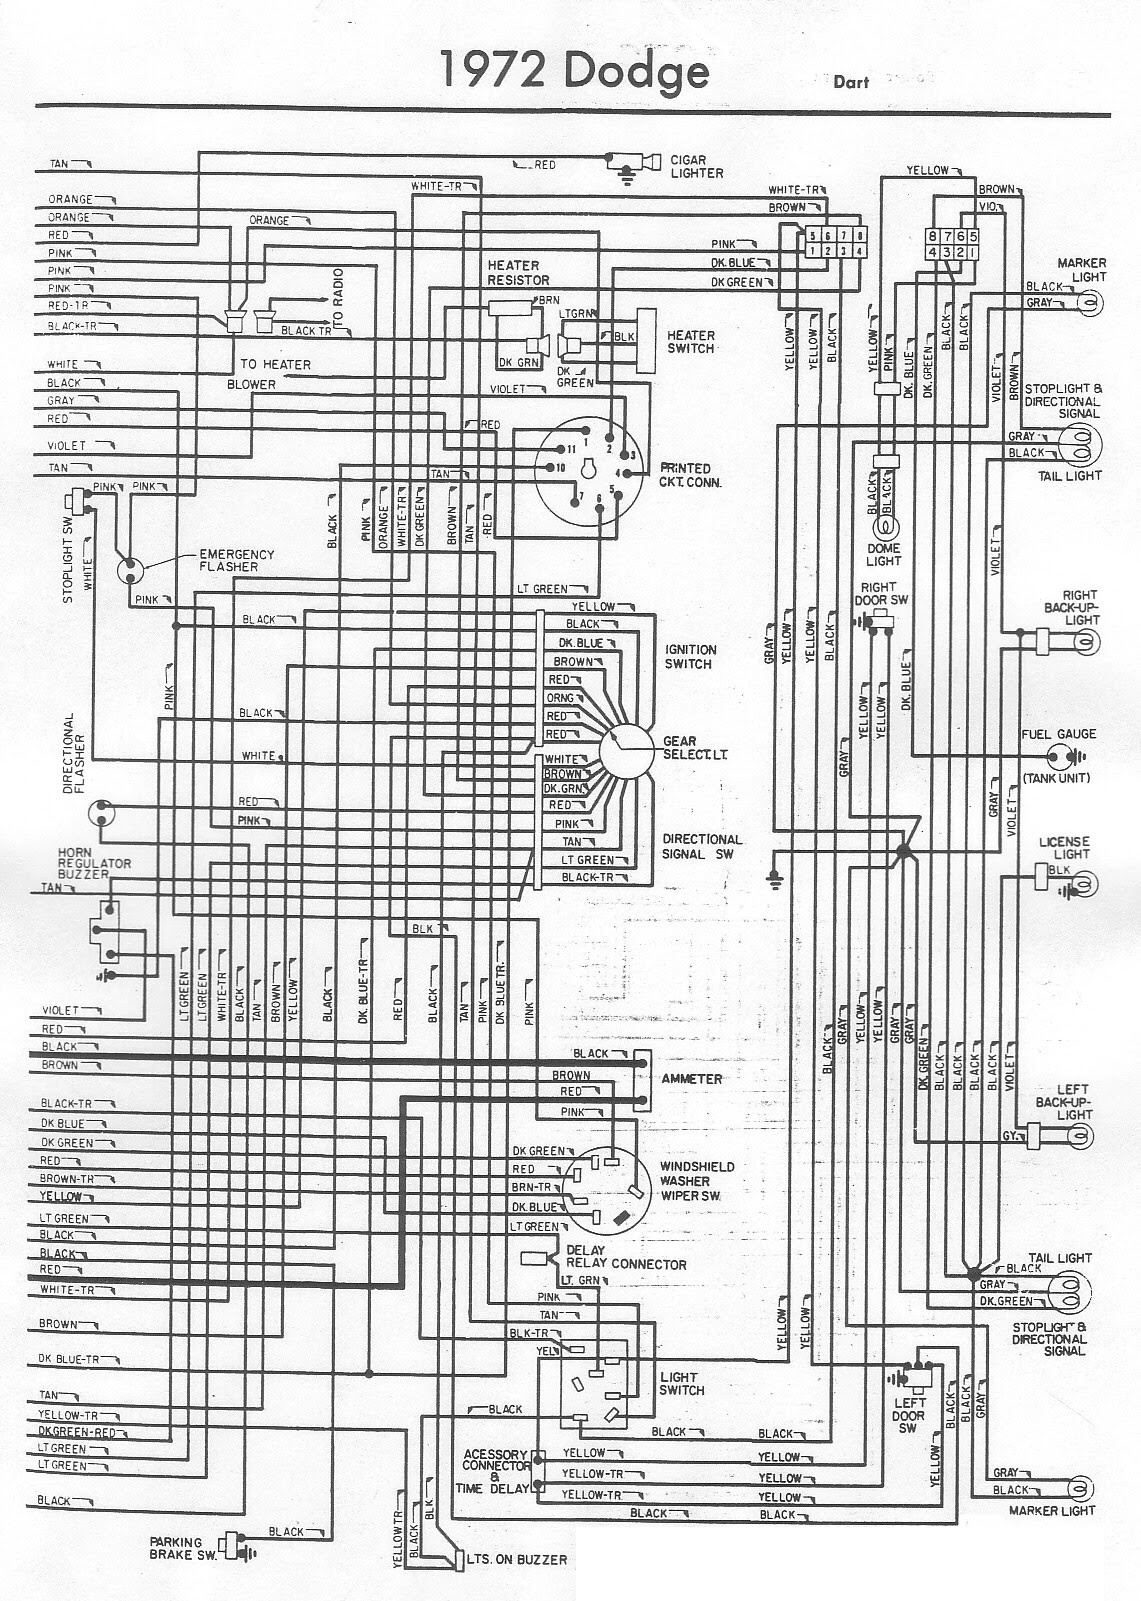 1972 Dodge Wiring Diagram Wiring Diagram Visual Visual Cfcarsnoleggio It